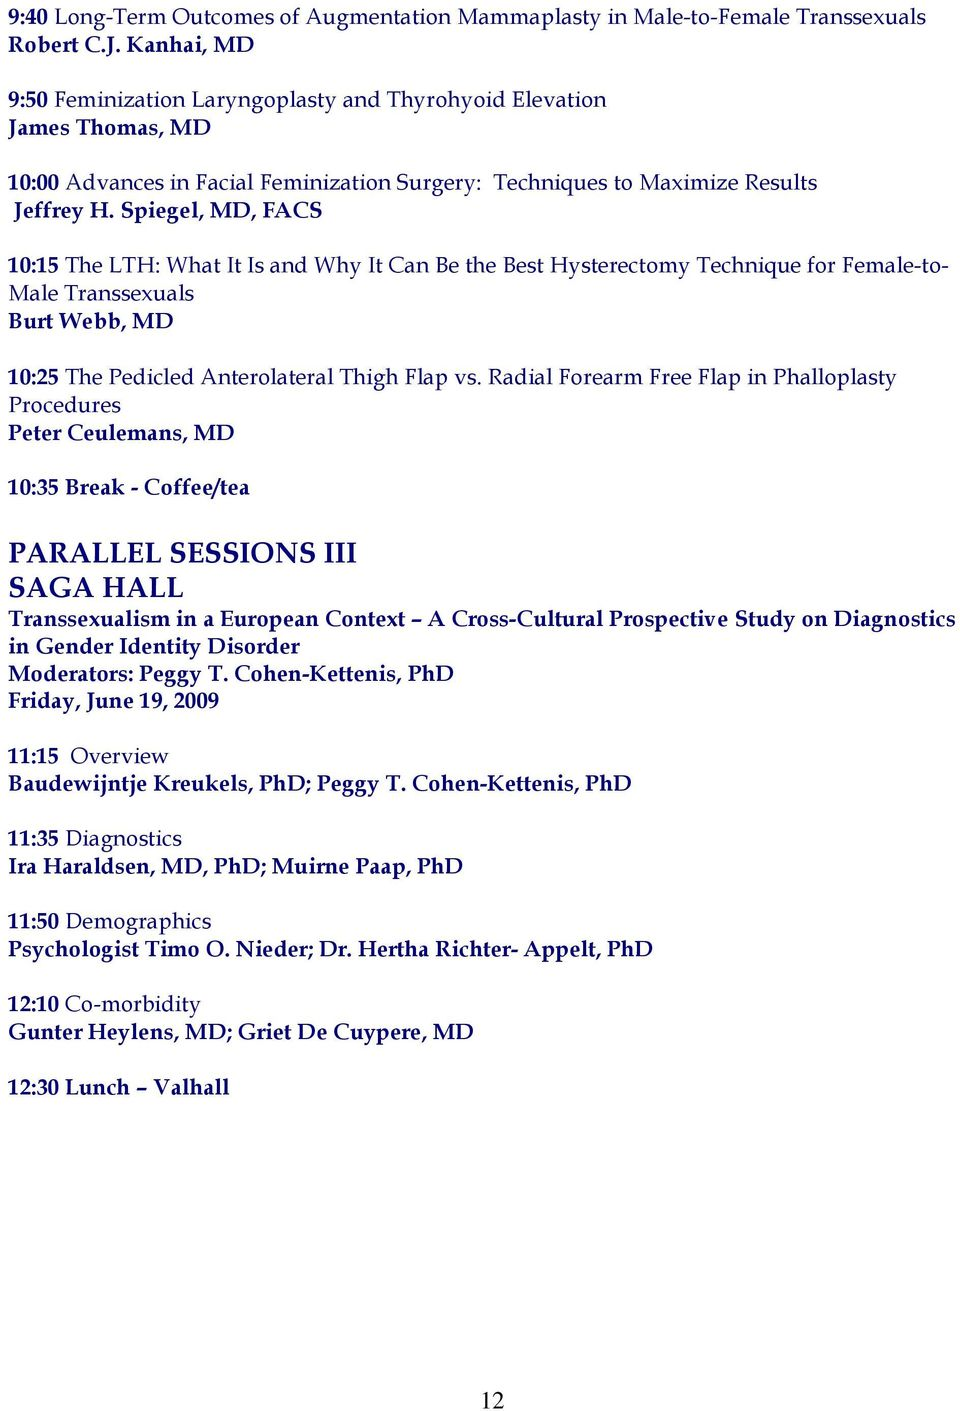 Spiegel, MD, FACS 10:15 The LTH: What It Is and Why It Can Be the Best Hysterectomy Technique for Female-to- Male Transsexuals Burt Webb, MD 10:25 The Pedicled Anterolateral Thigh Flap vs.